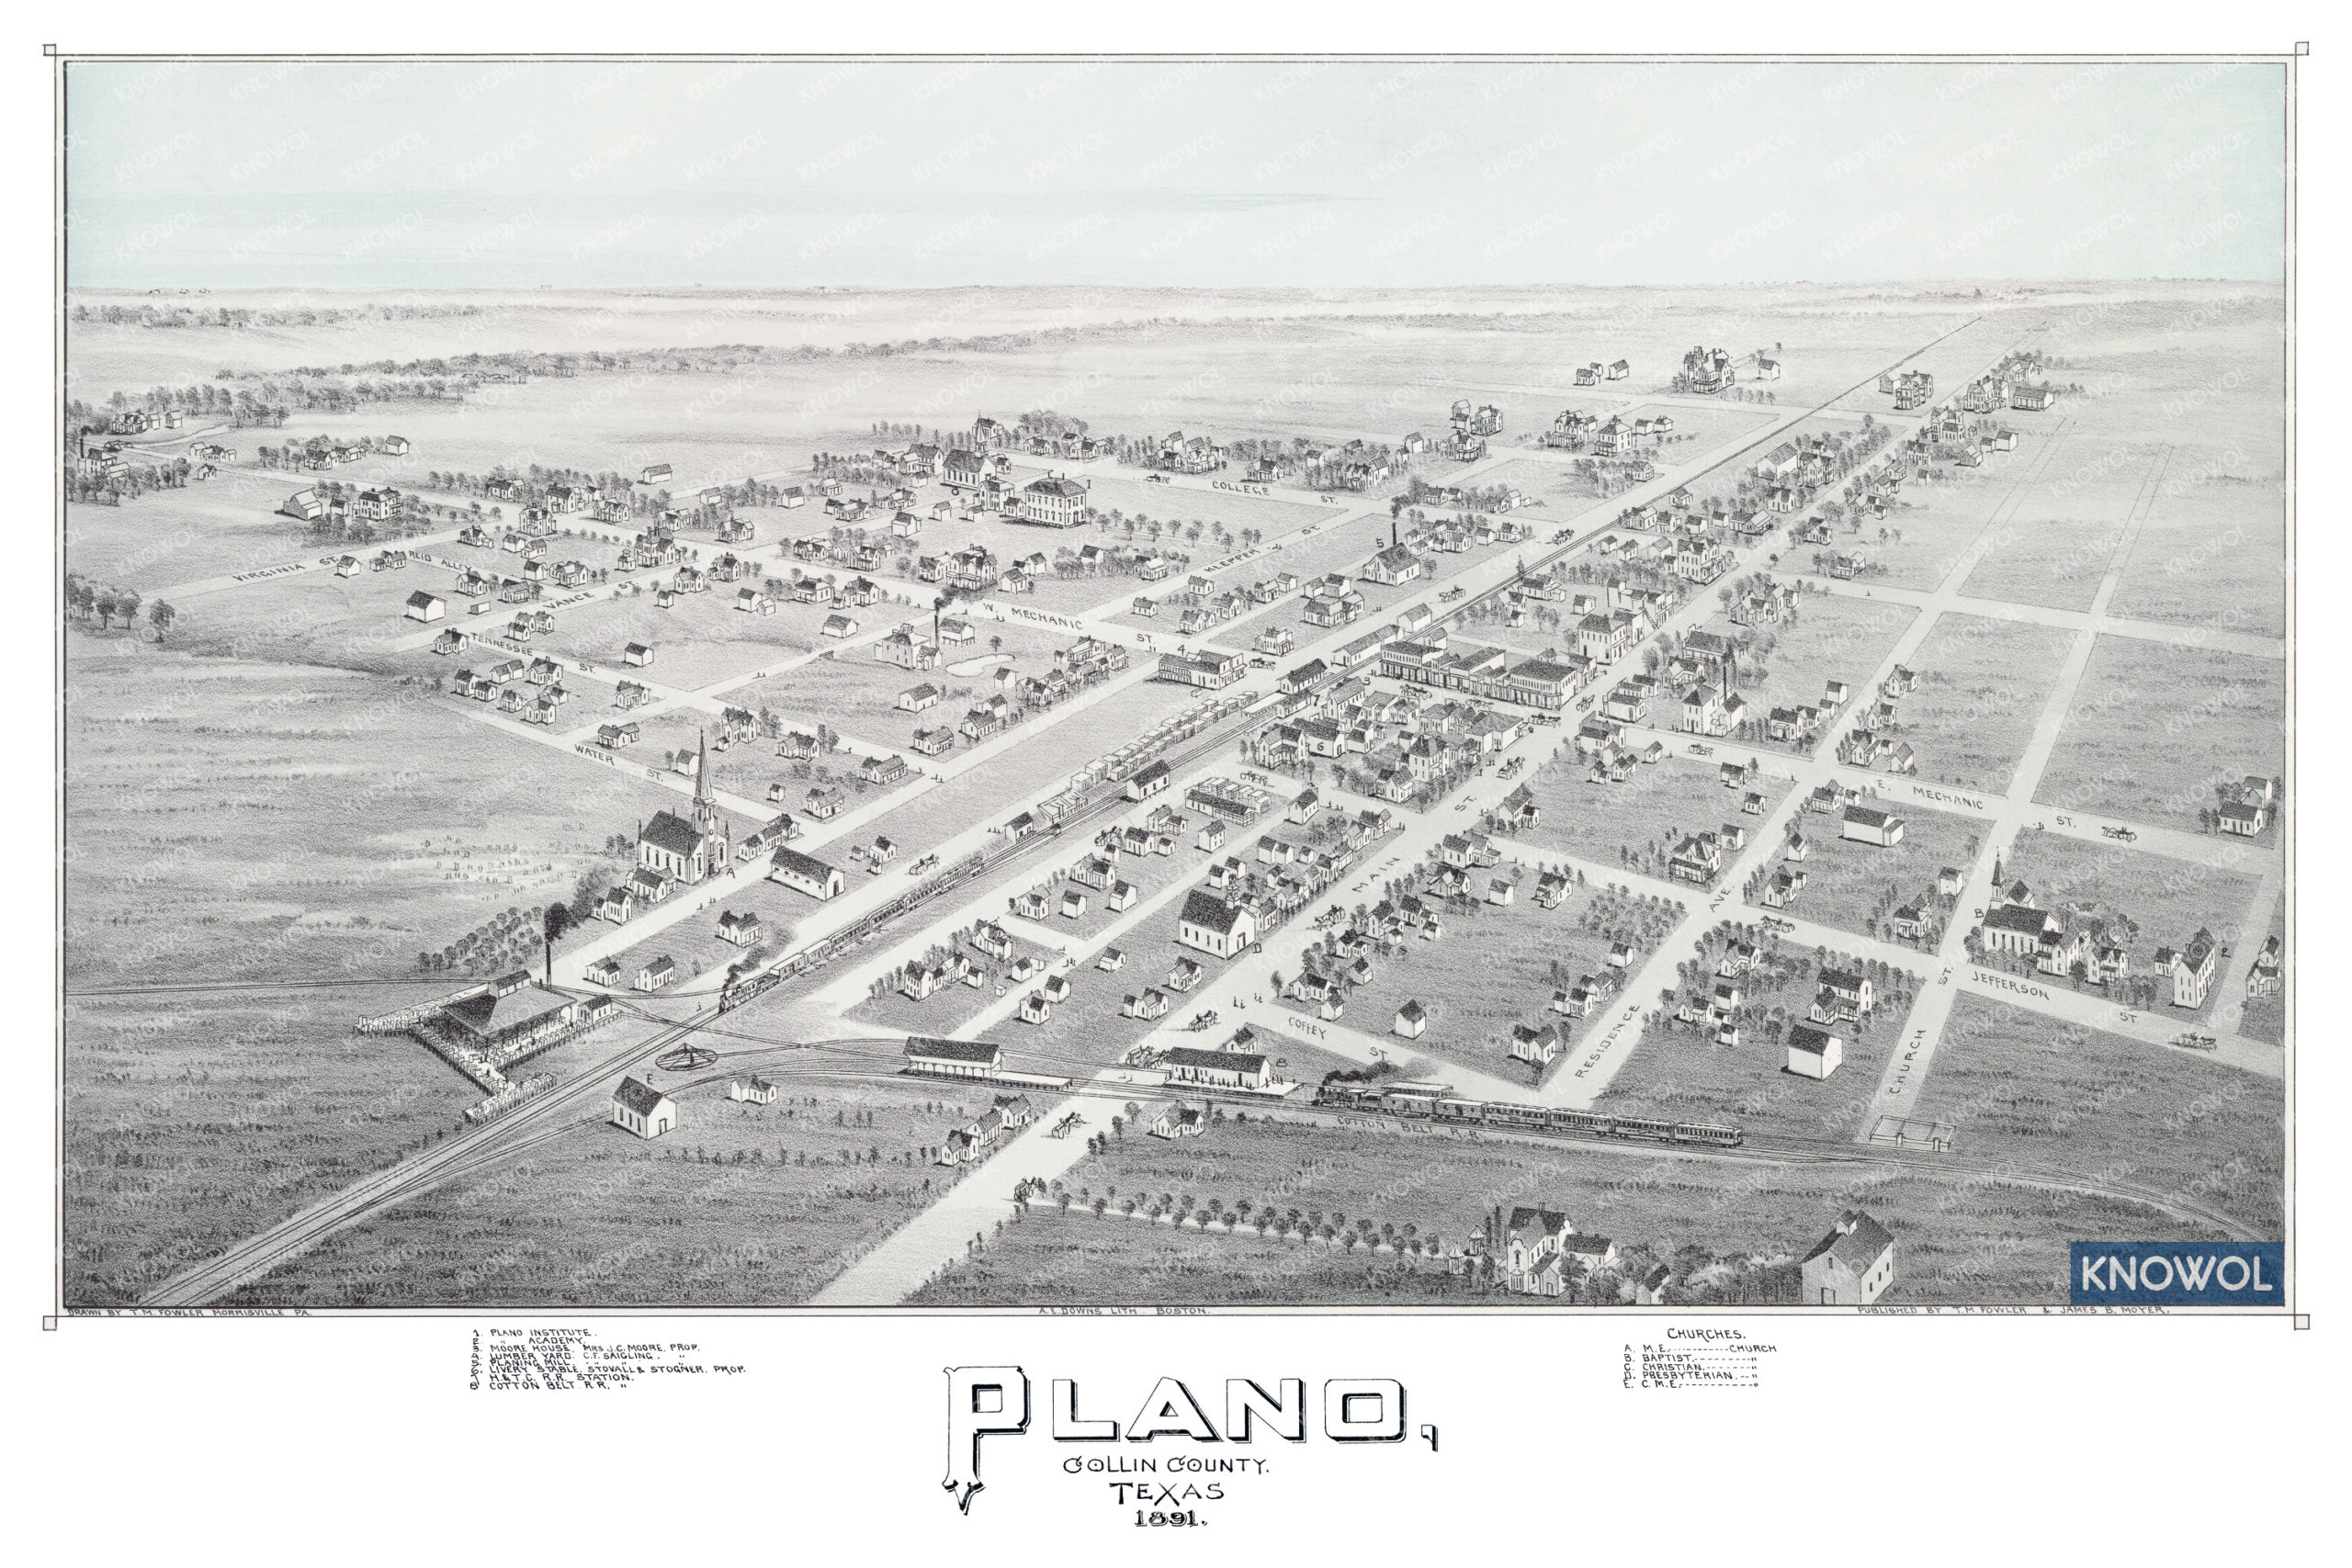 Historic bird's eye view of Plano, Texas in 1891. The map shows a detailed bird's eye view of the city as it looked in the late 19th century. The map shows railroads, street names, and other historic landmarks.